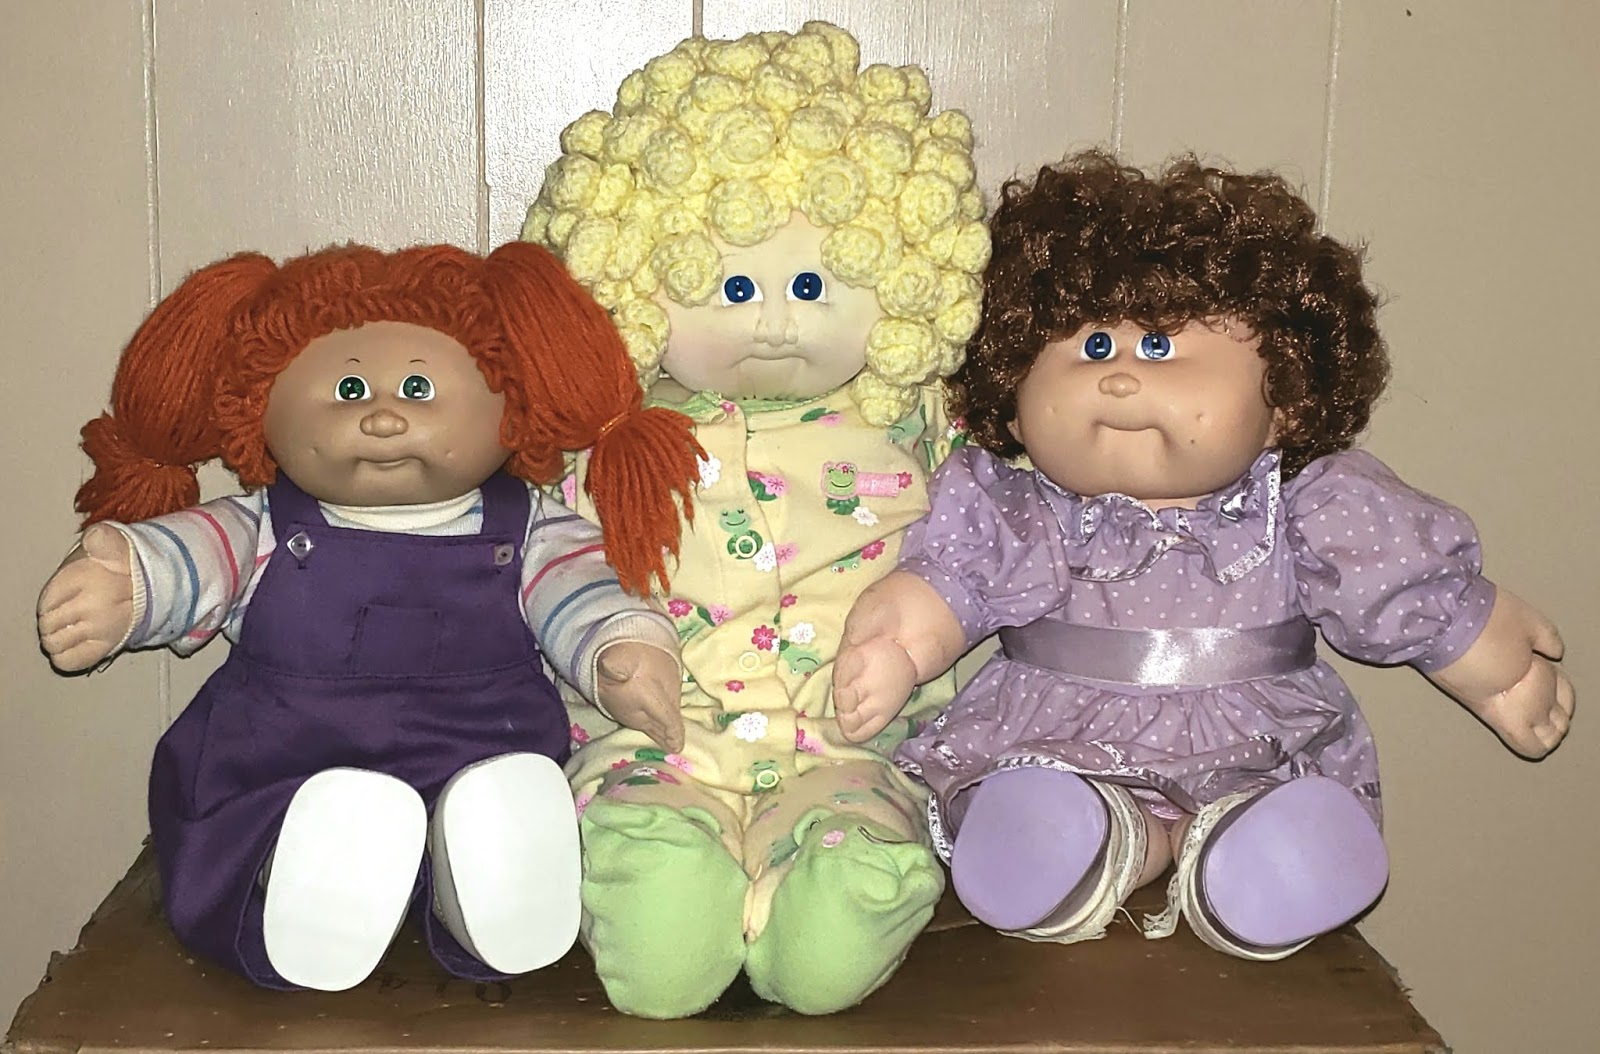 Confessions of a Dolly Lover: Under the cabbage leaf: Coleco preemie vs.  Jakks Pacific newborn